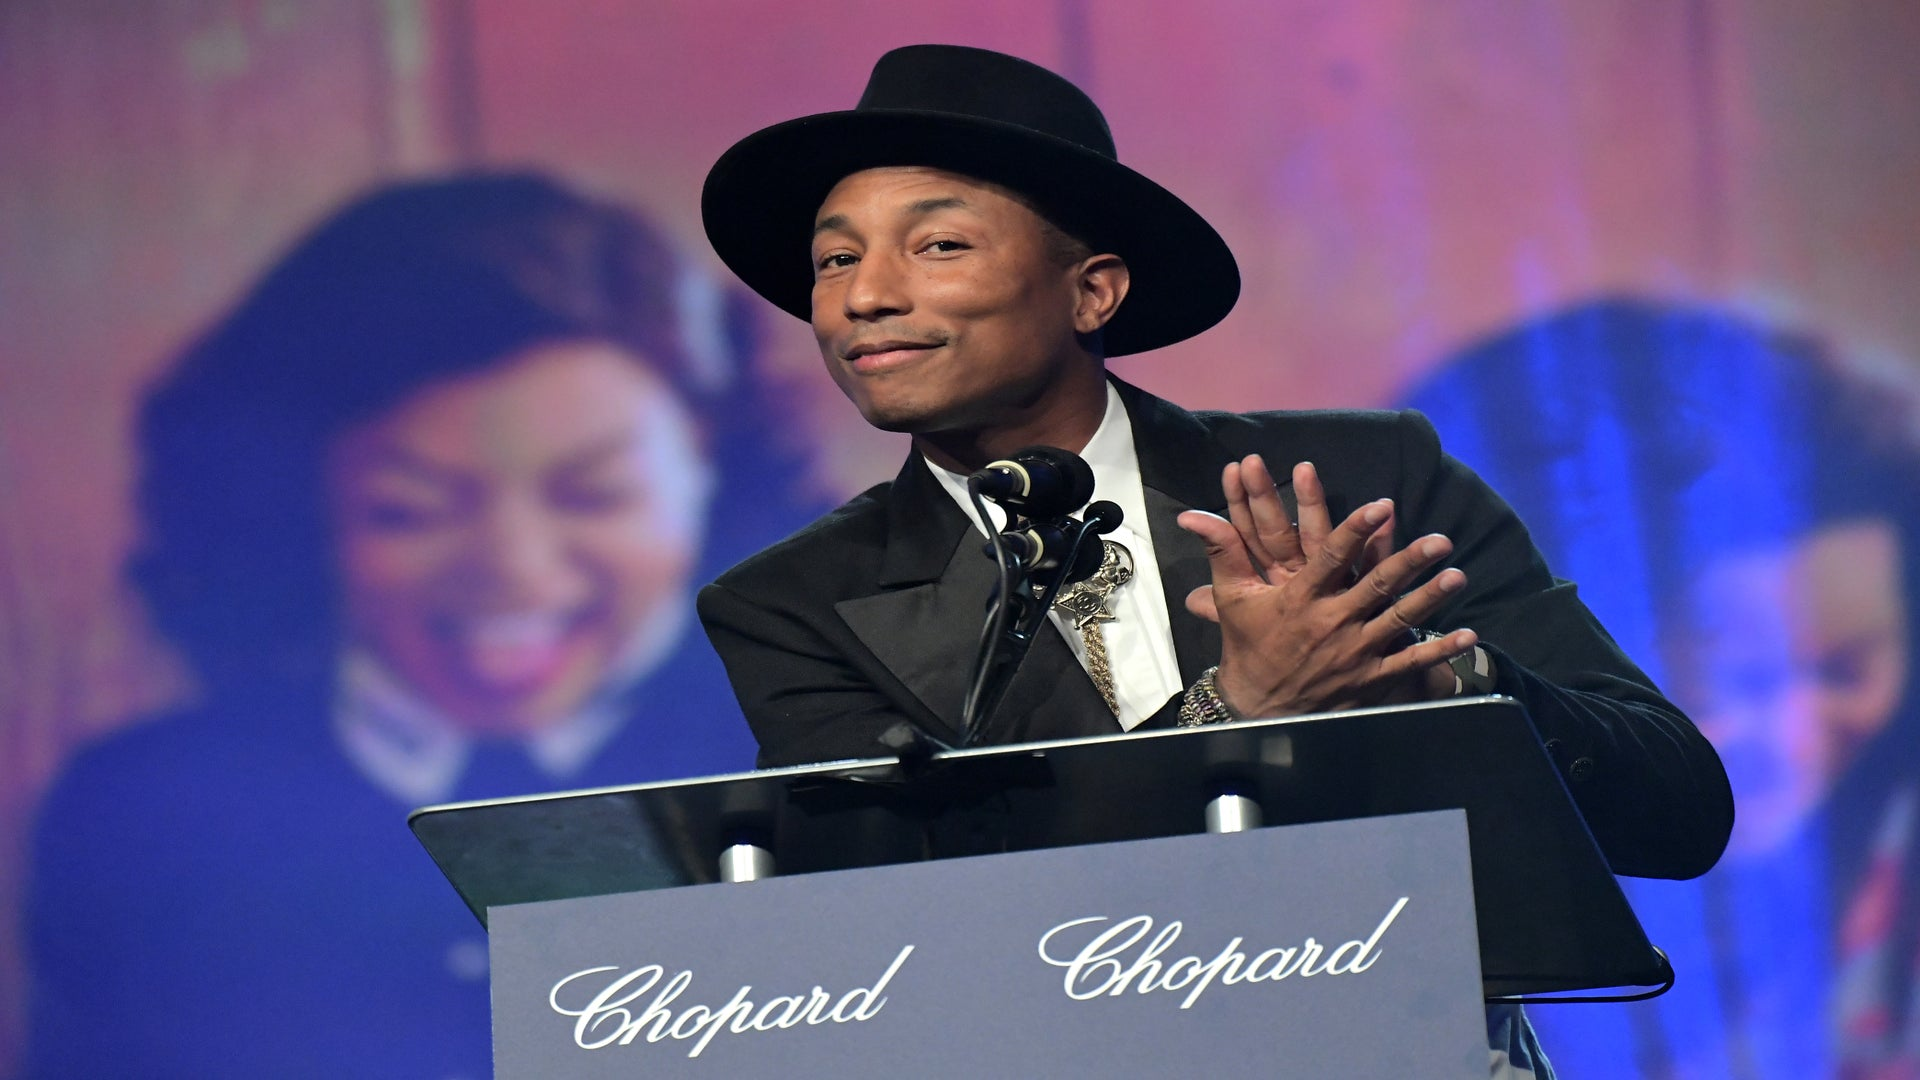 Pharrell Williams Reveals Why He's Leaving 'The Voice'